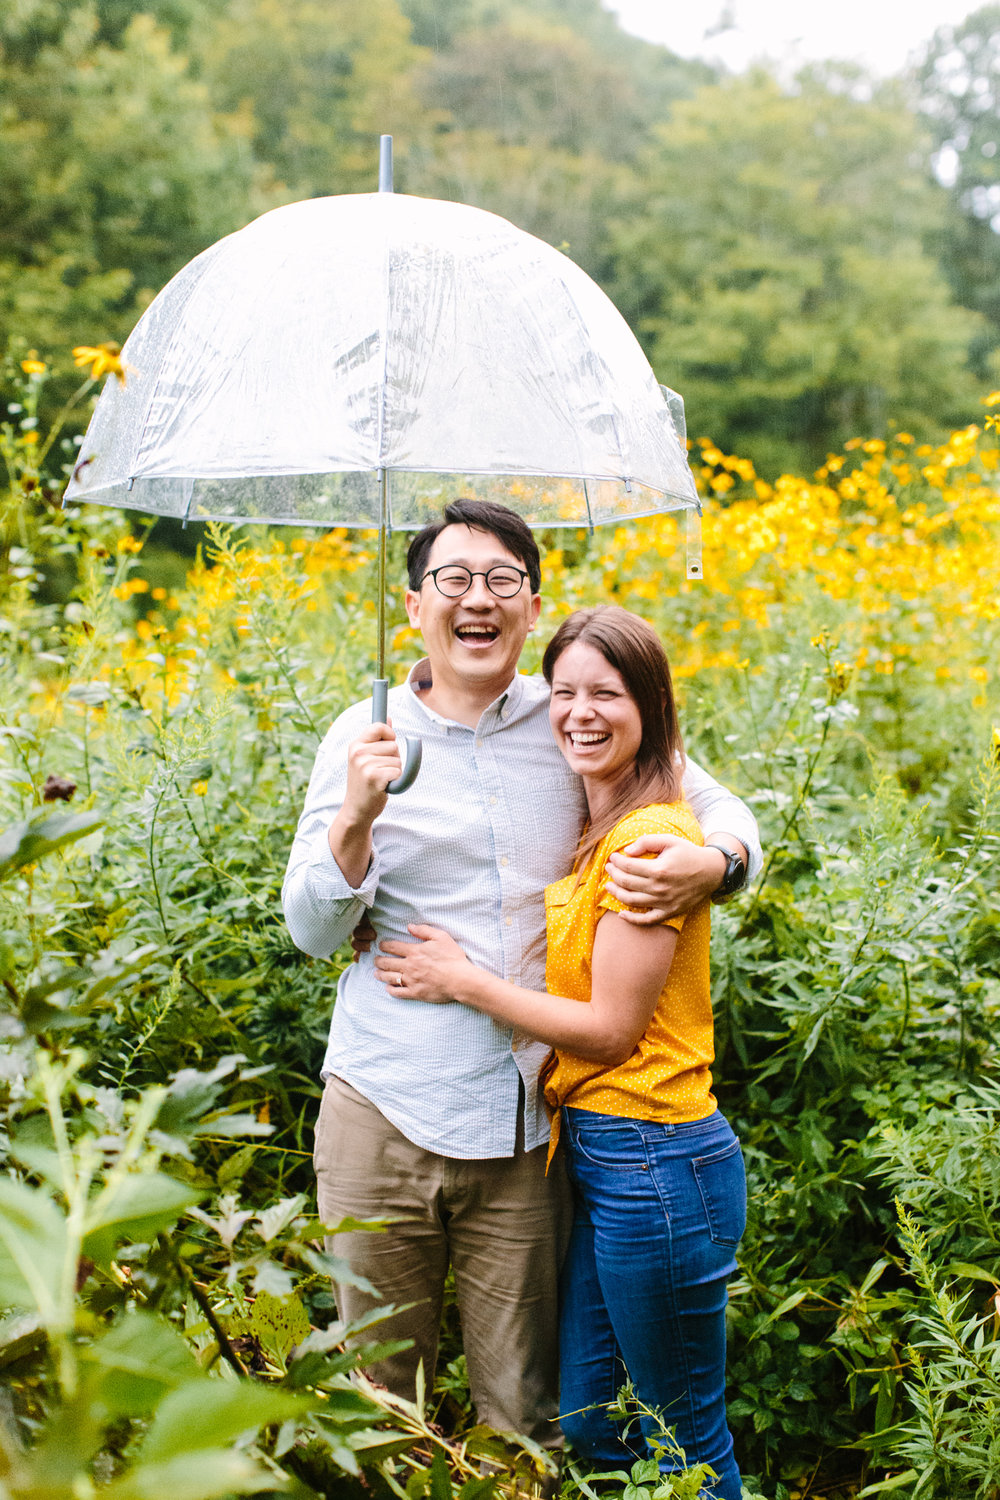 Rainy Engagement Pictures // Sunflower Field Engagement Photos Max Patch // Suzy Collins Photography